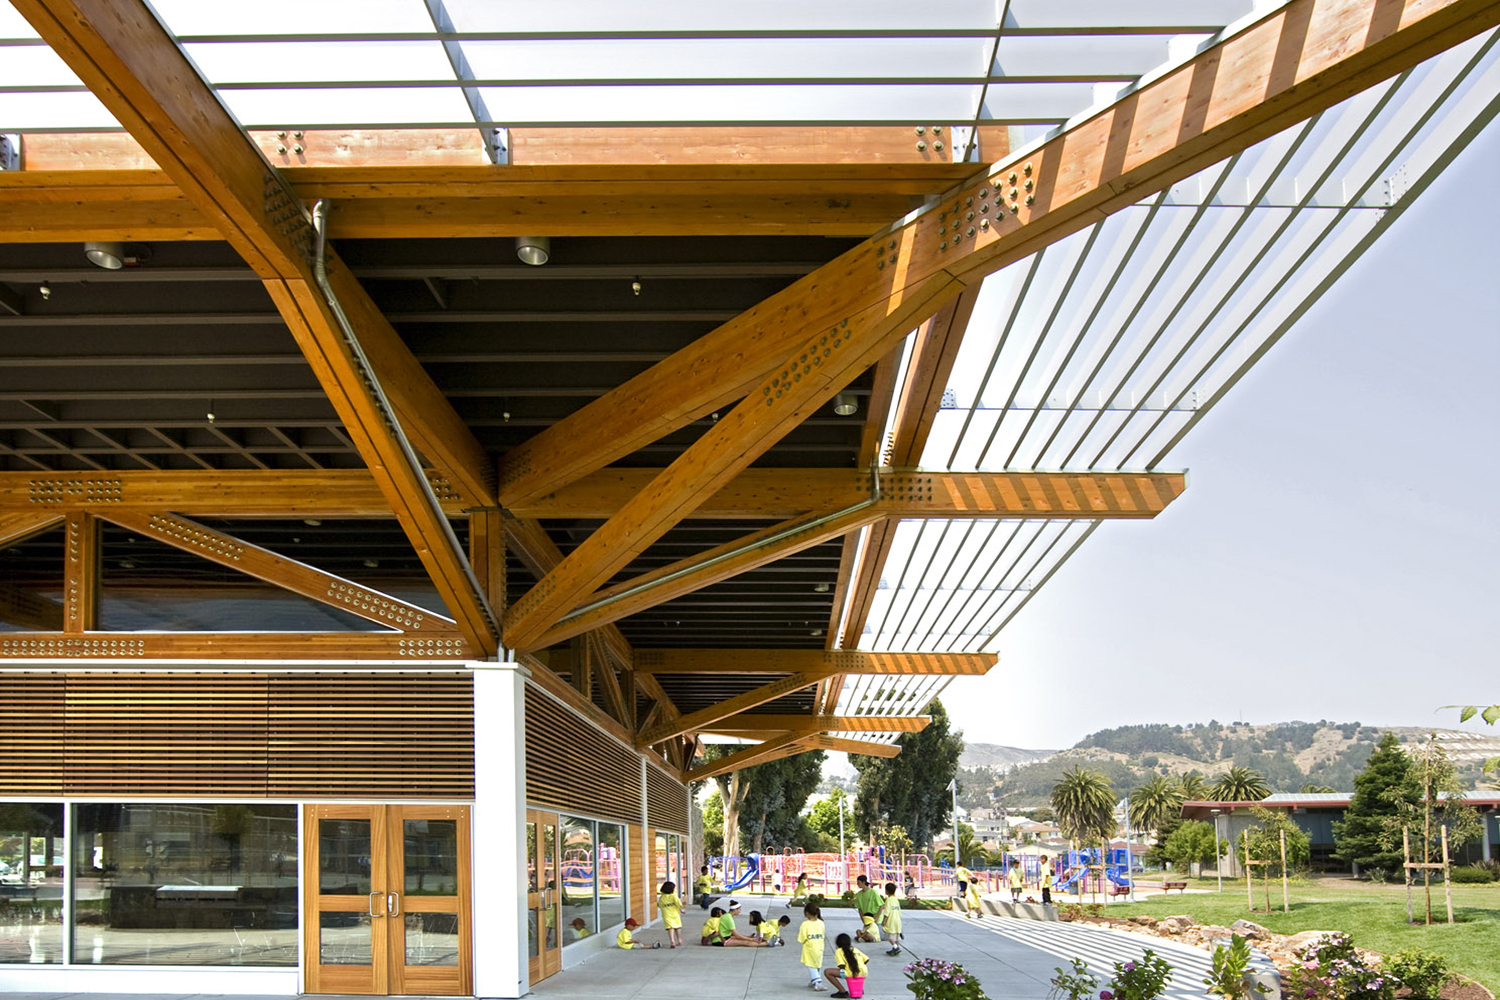 085_Projects_Orange+Park+Community+Recreation+Center.jpg